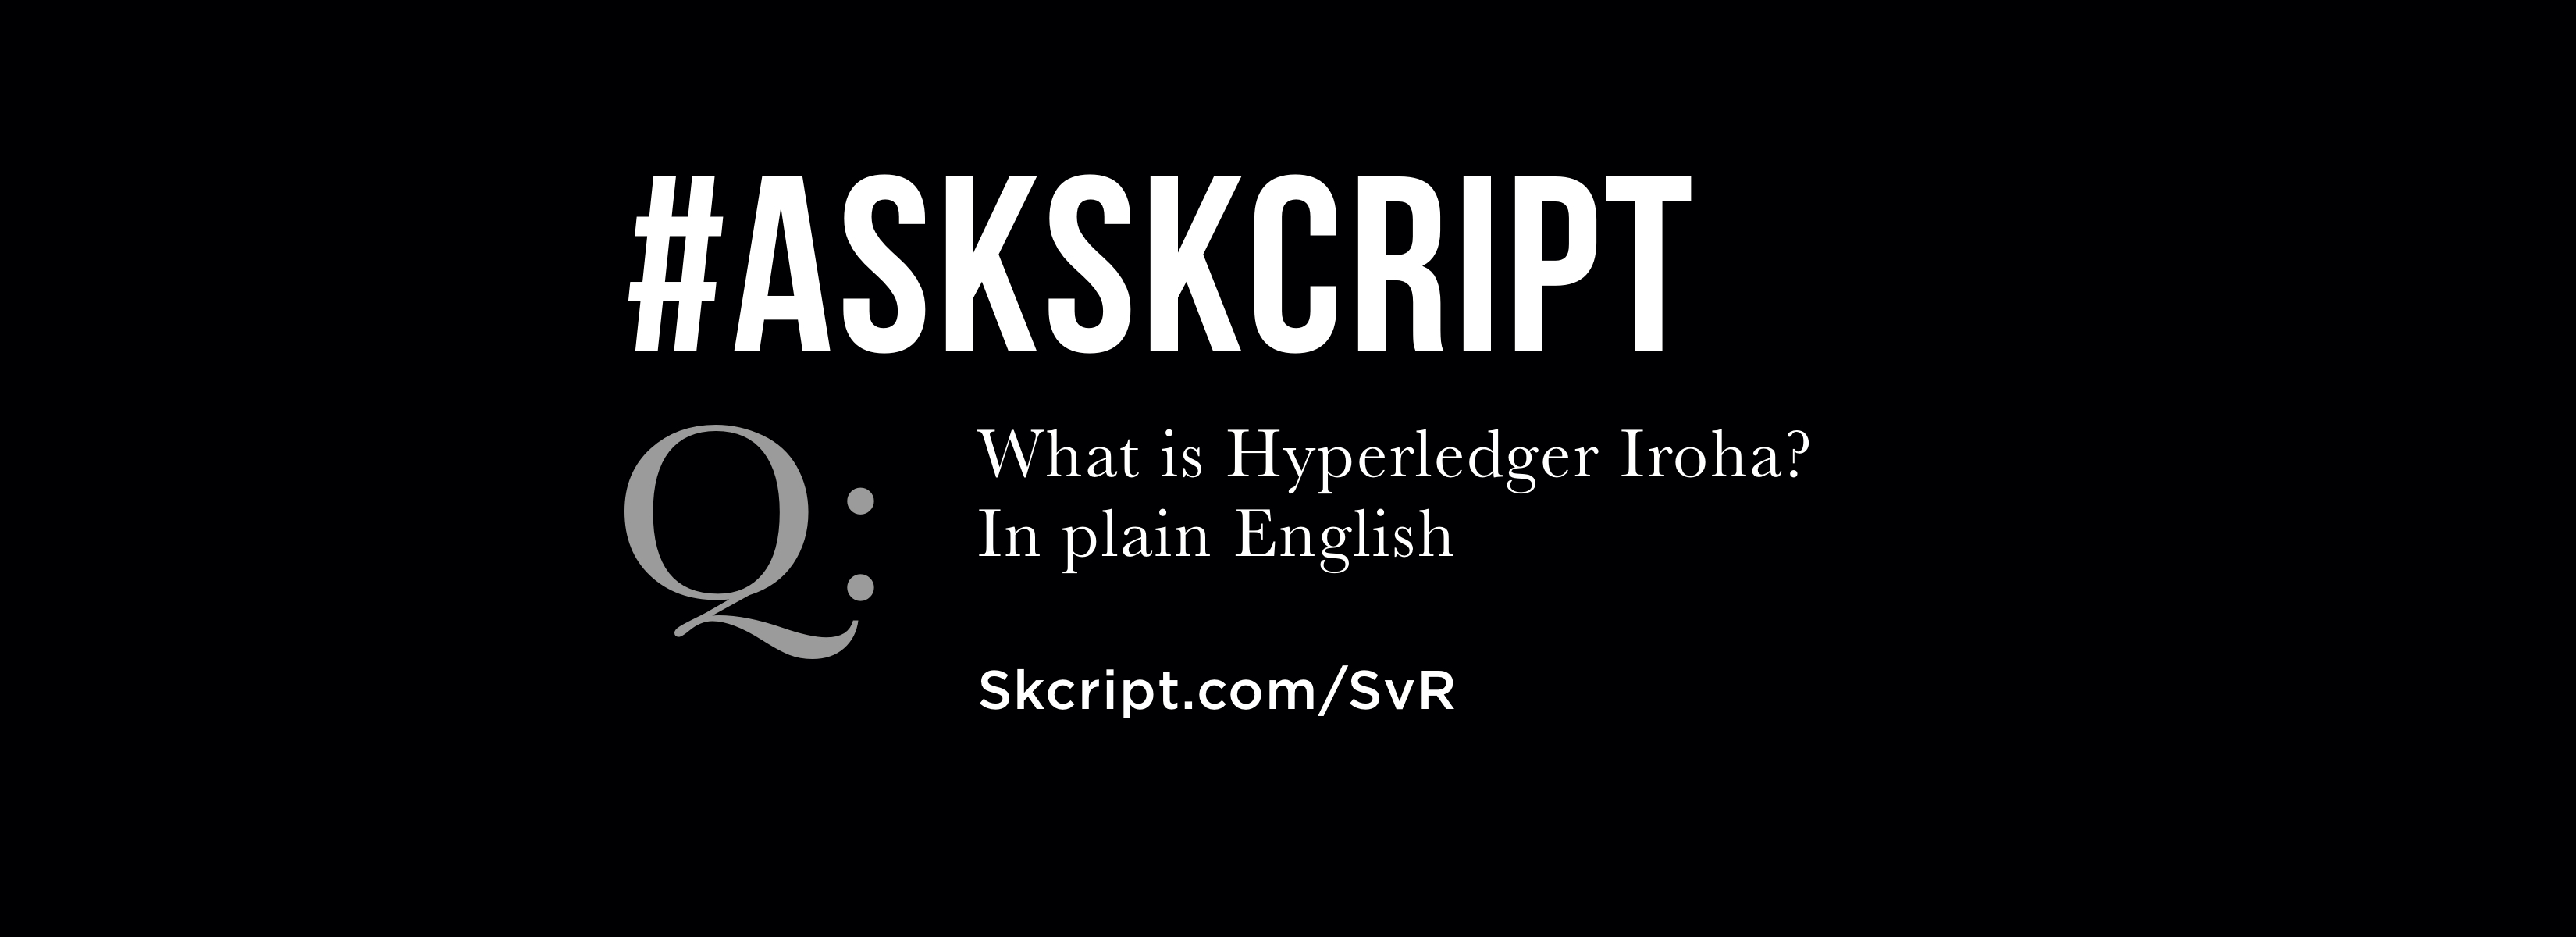 #AskSkcript: What is Hyperledger Iroha? Explained in simple terms.